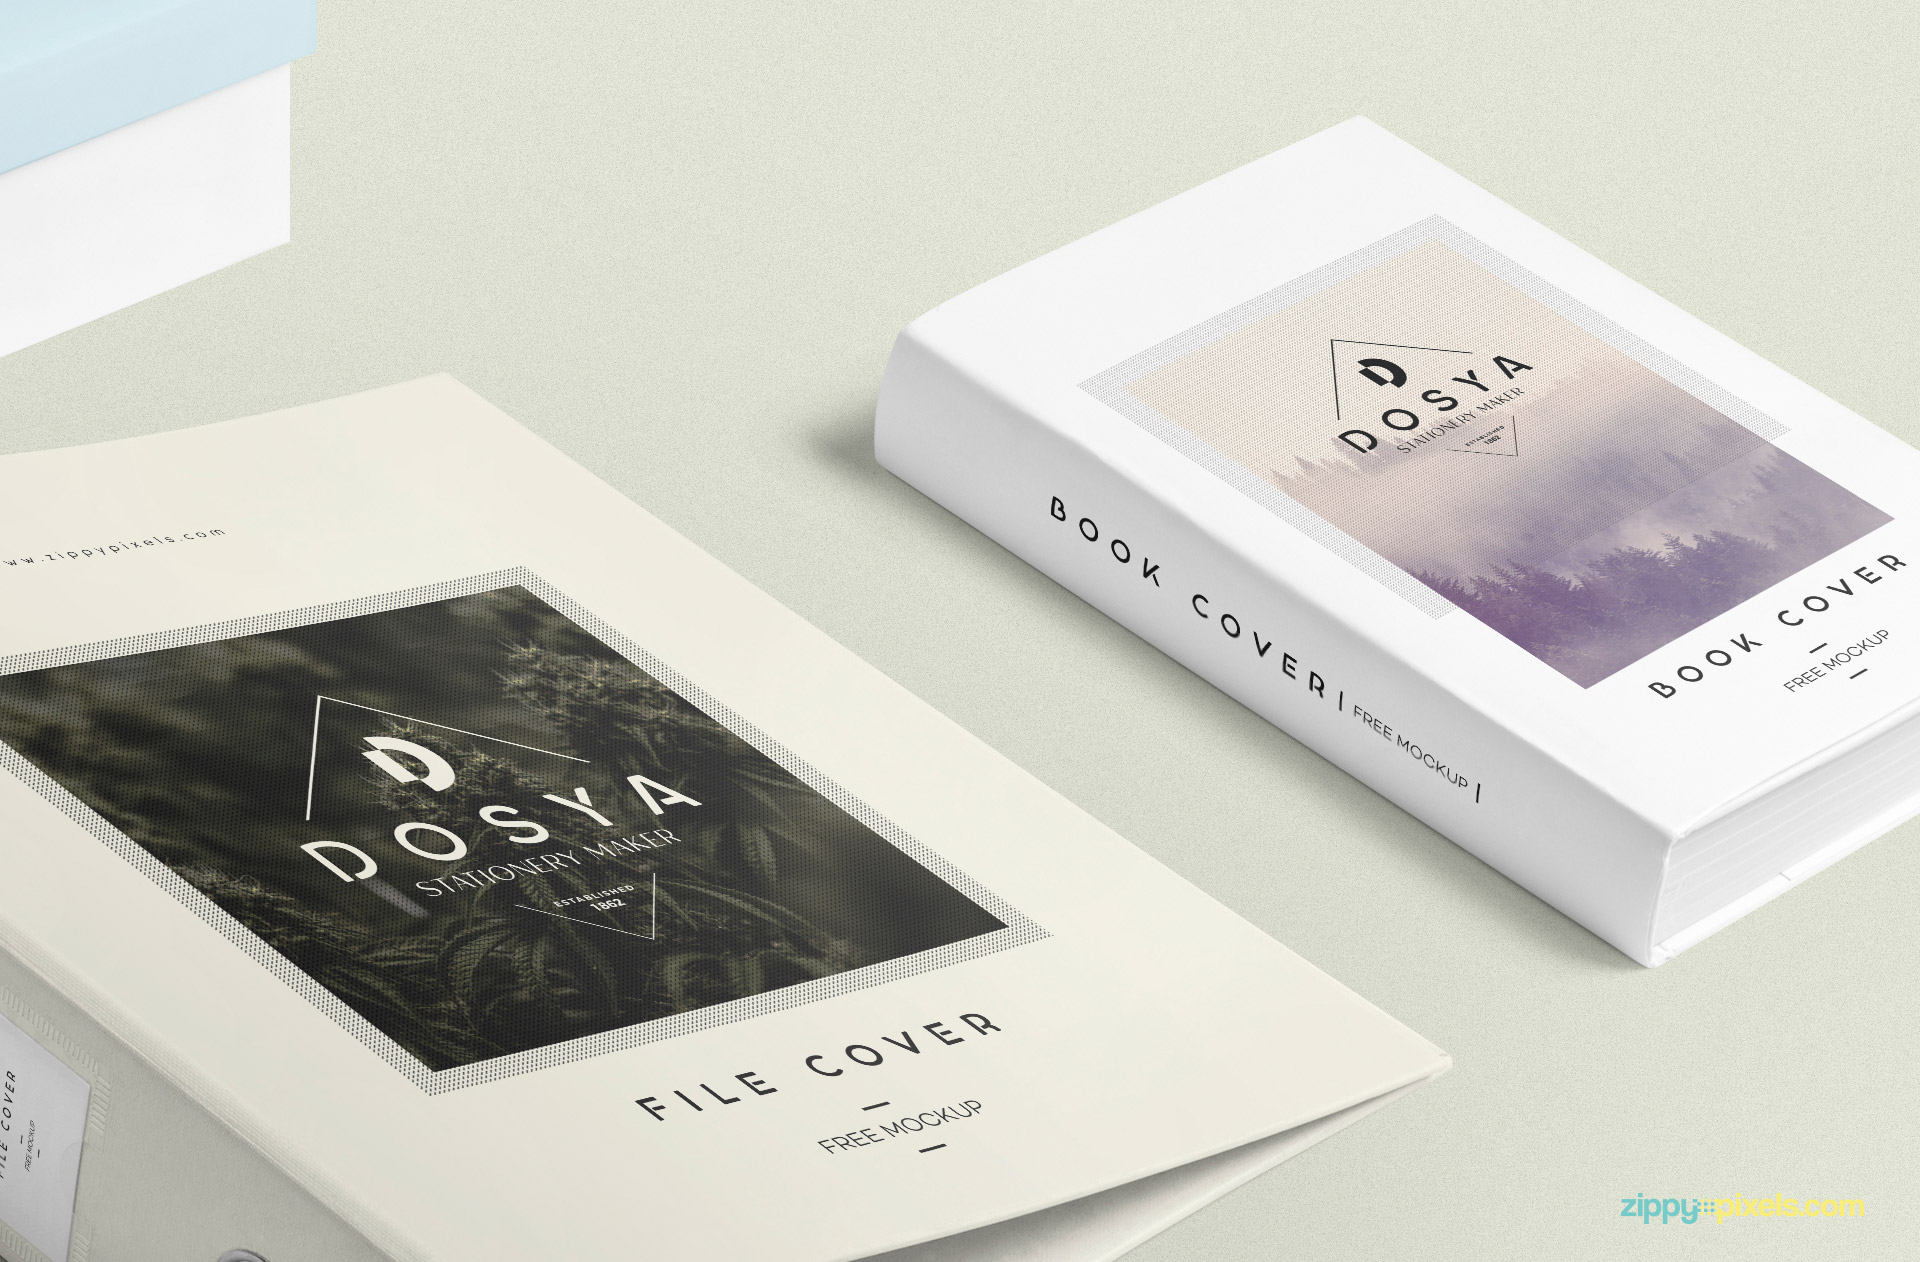 Even the book cover mockup has separate options for top and binding design.